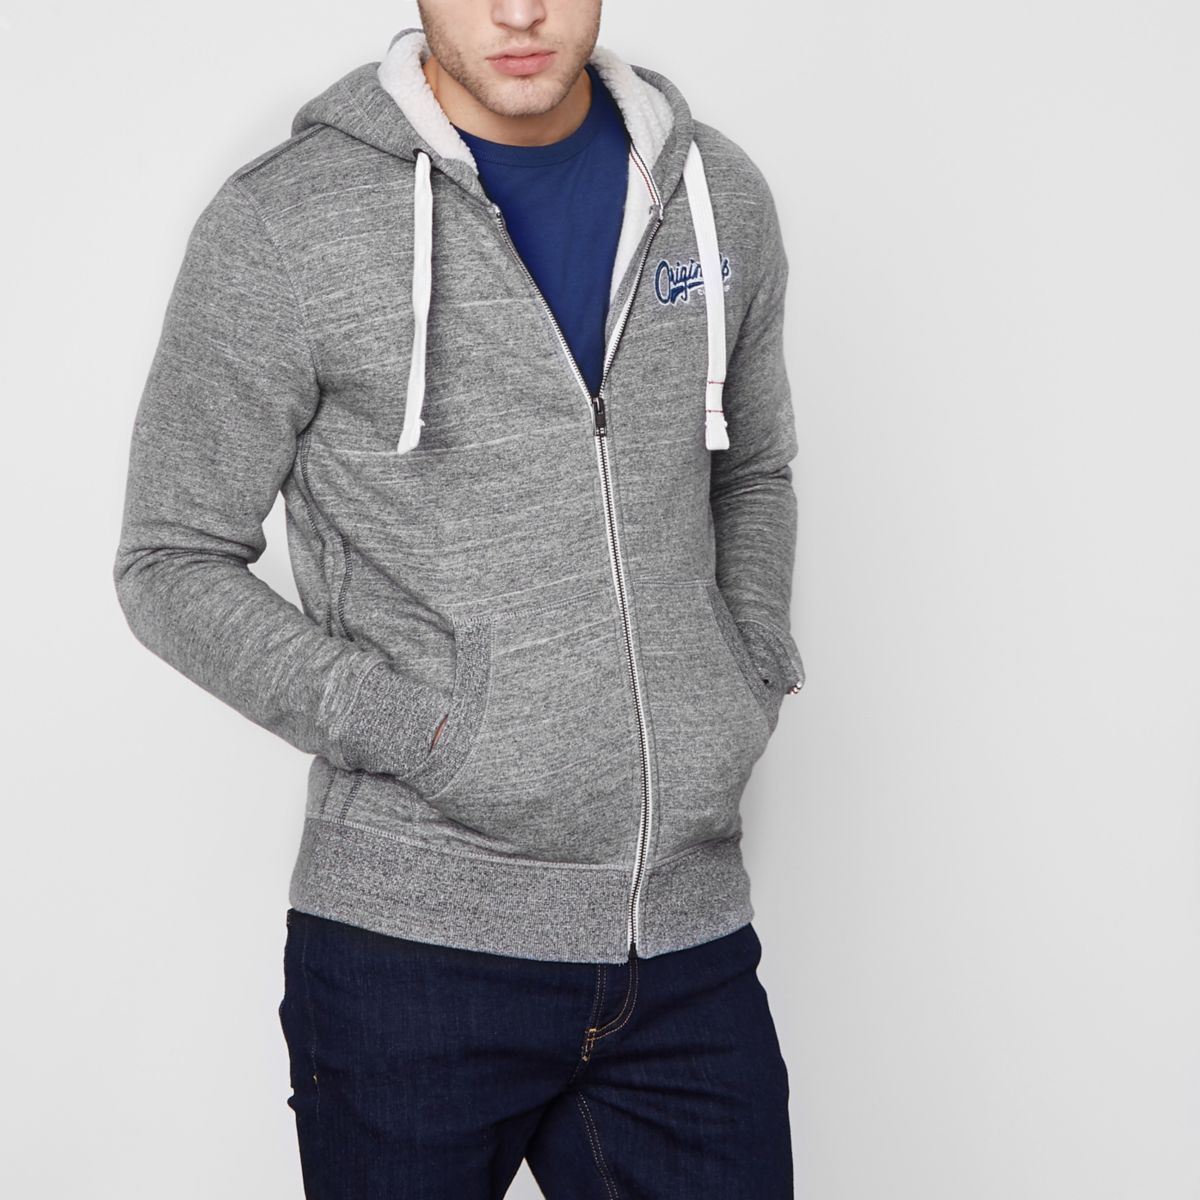 Grey Jack & Jones 'originals' zip-up hoodIe